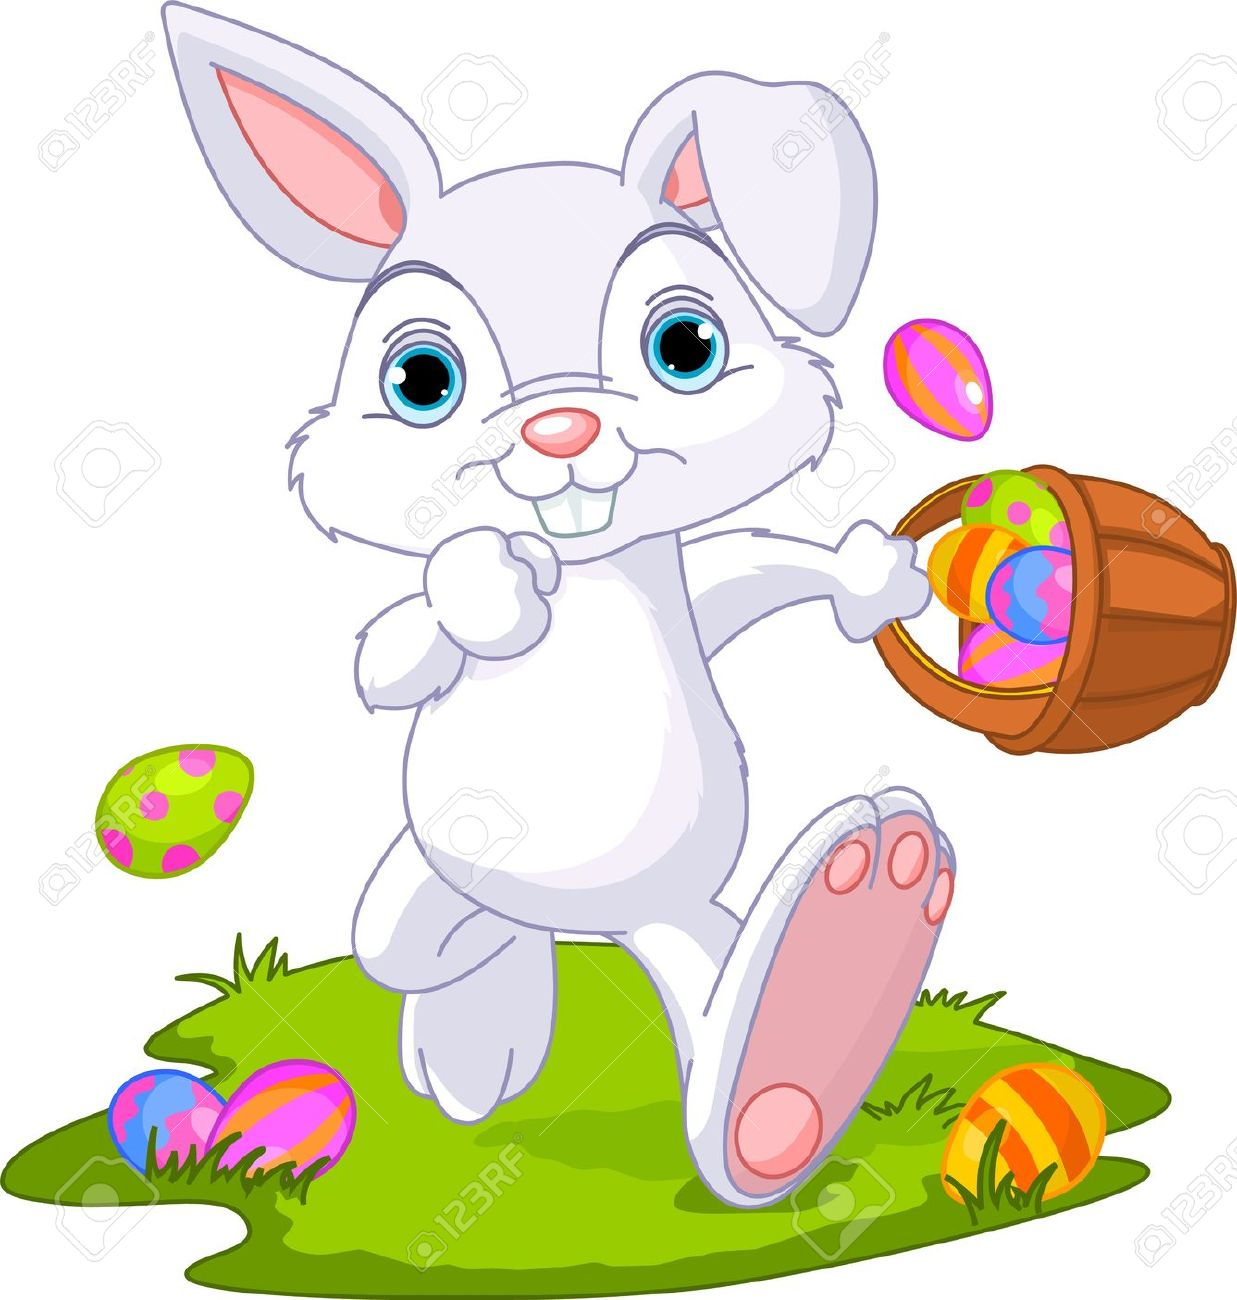 Easter bunny free clipart 5 » Clipart Station.